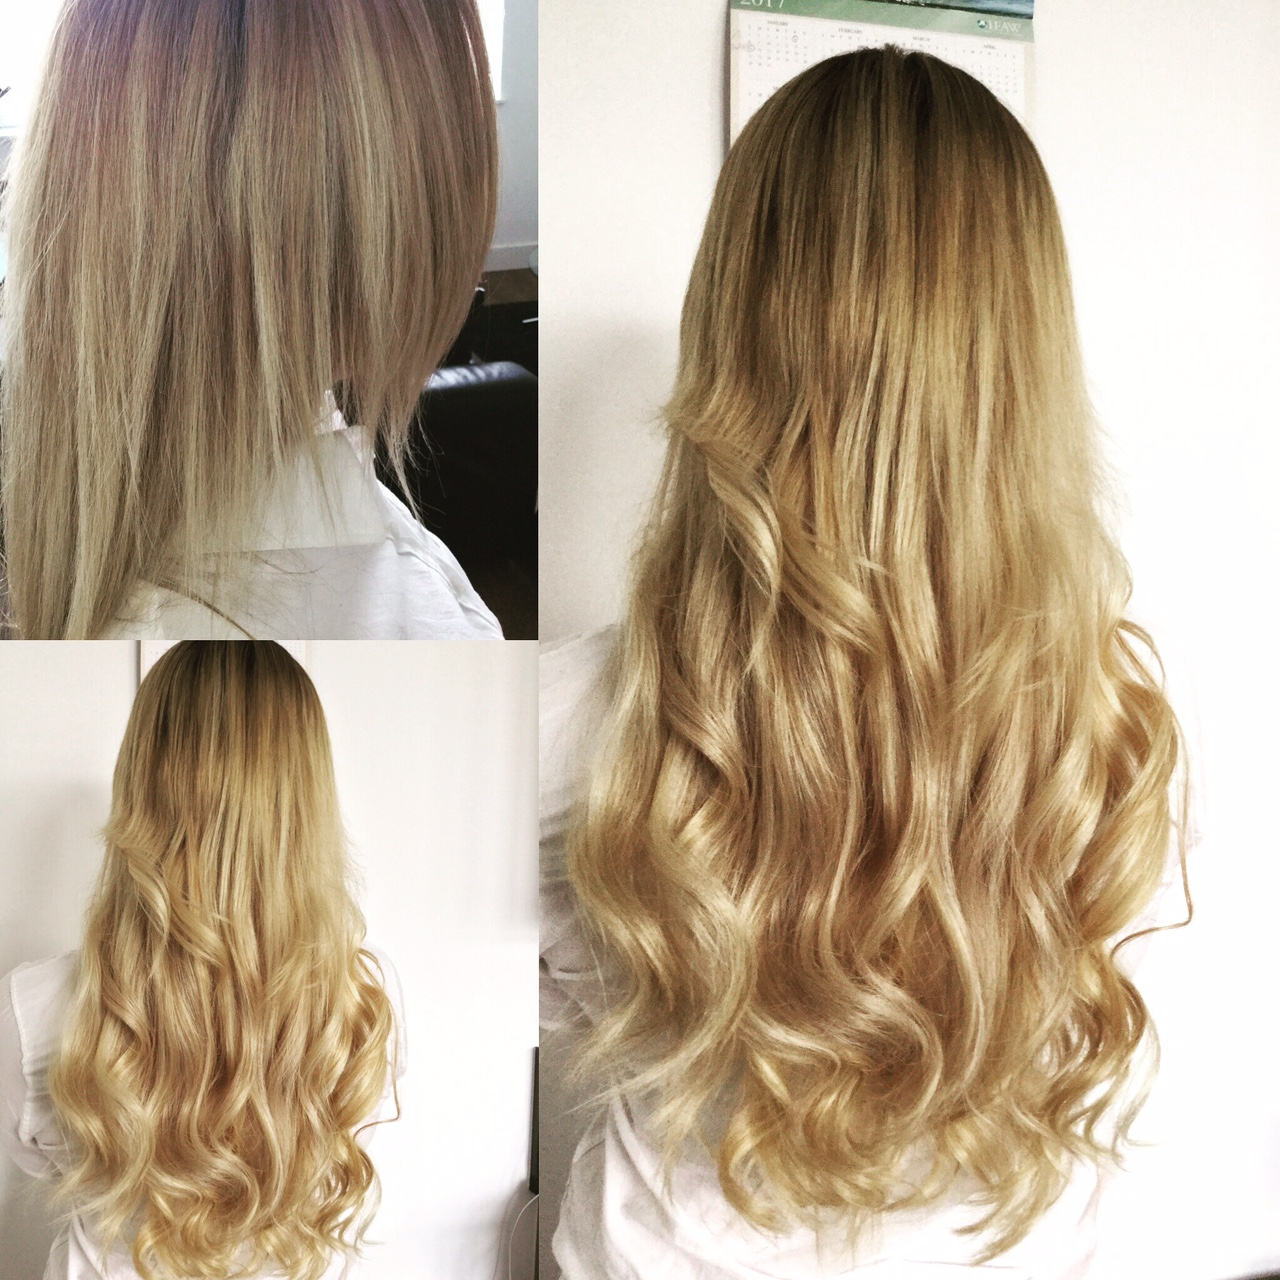 hair extensions in london